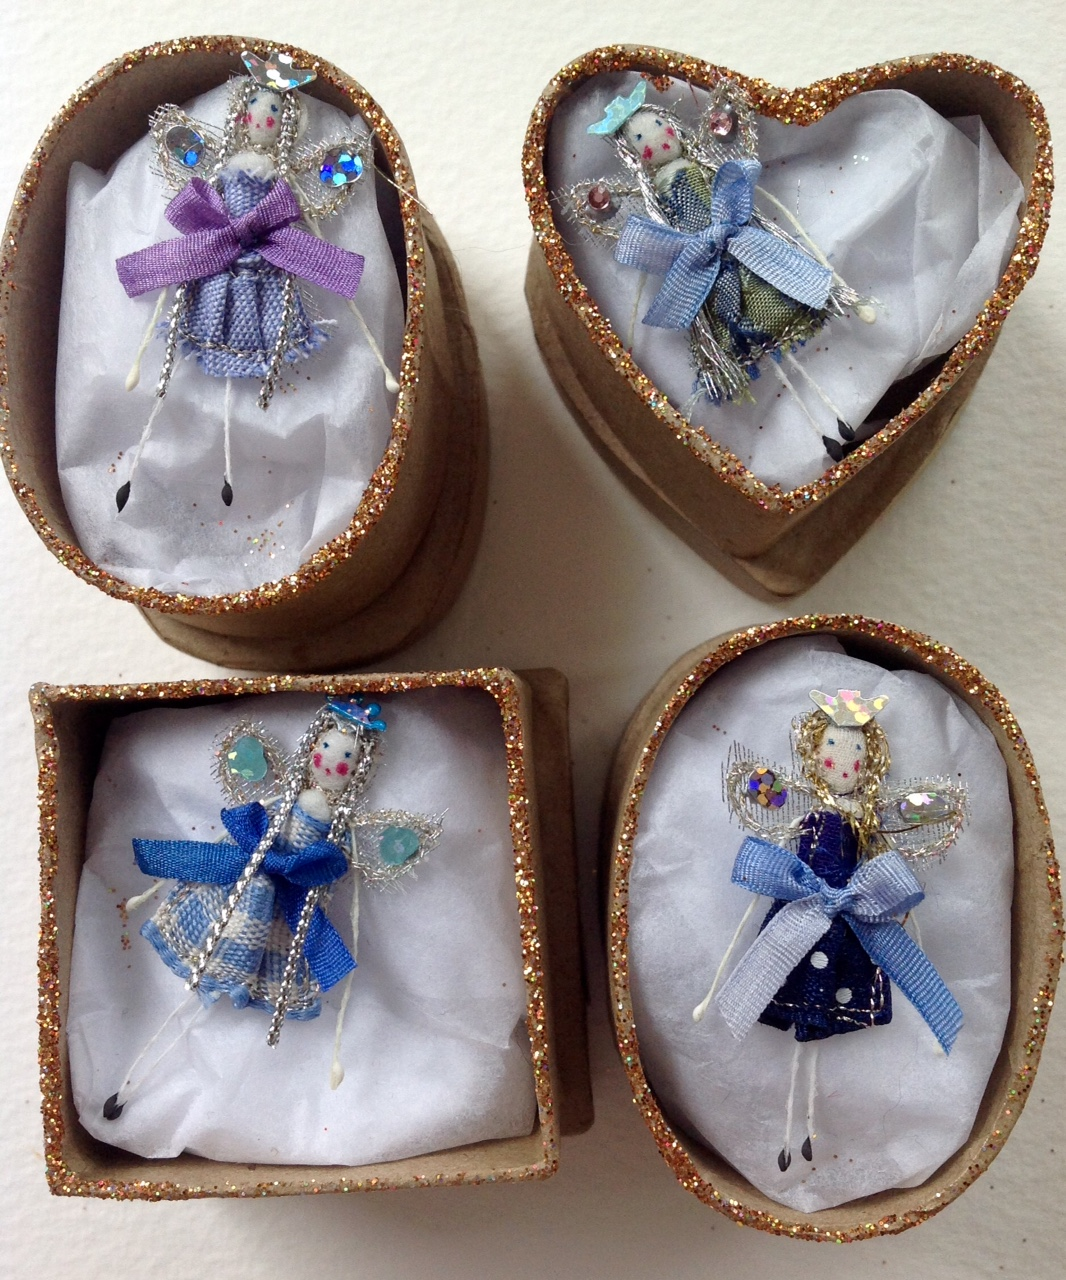 4cm fairies in boxes with their secret names in the lid. £8 plus £3 p&p.